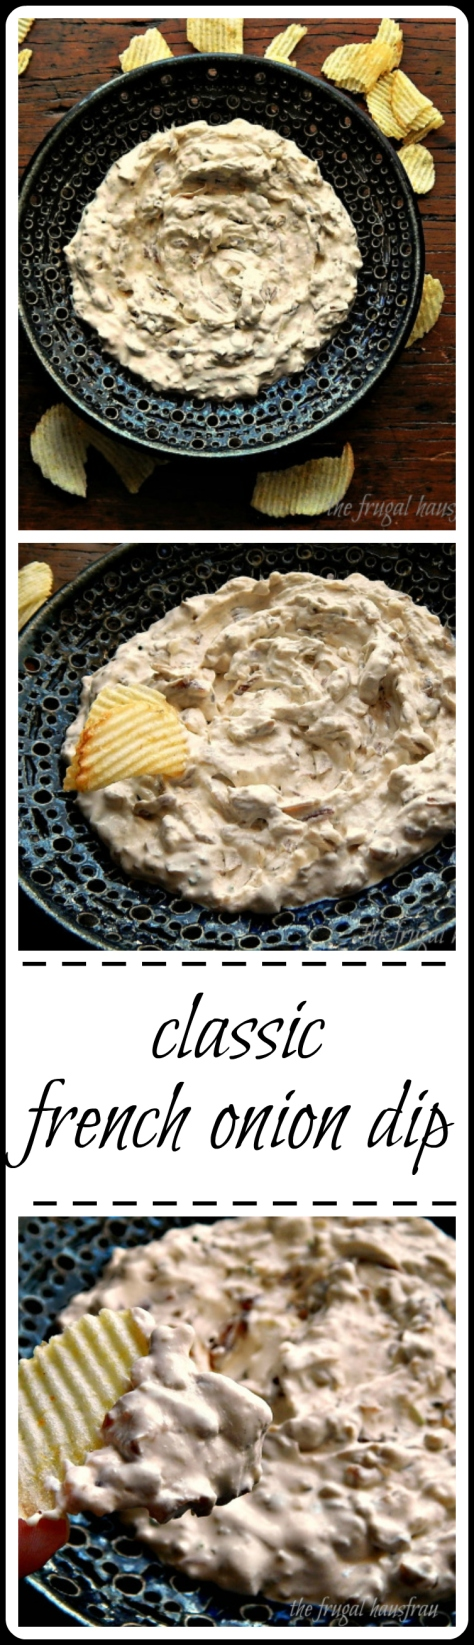 This is really BEST French Onion dip - so thick and creamy with real caramelized onions. You'll want to lick the bowl!